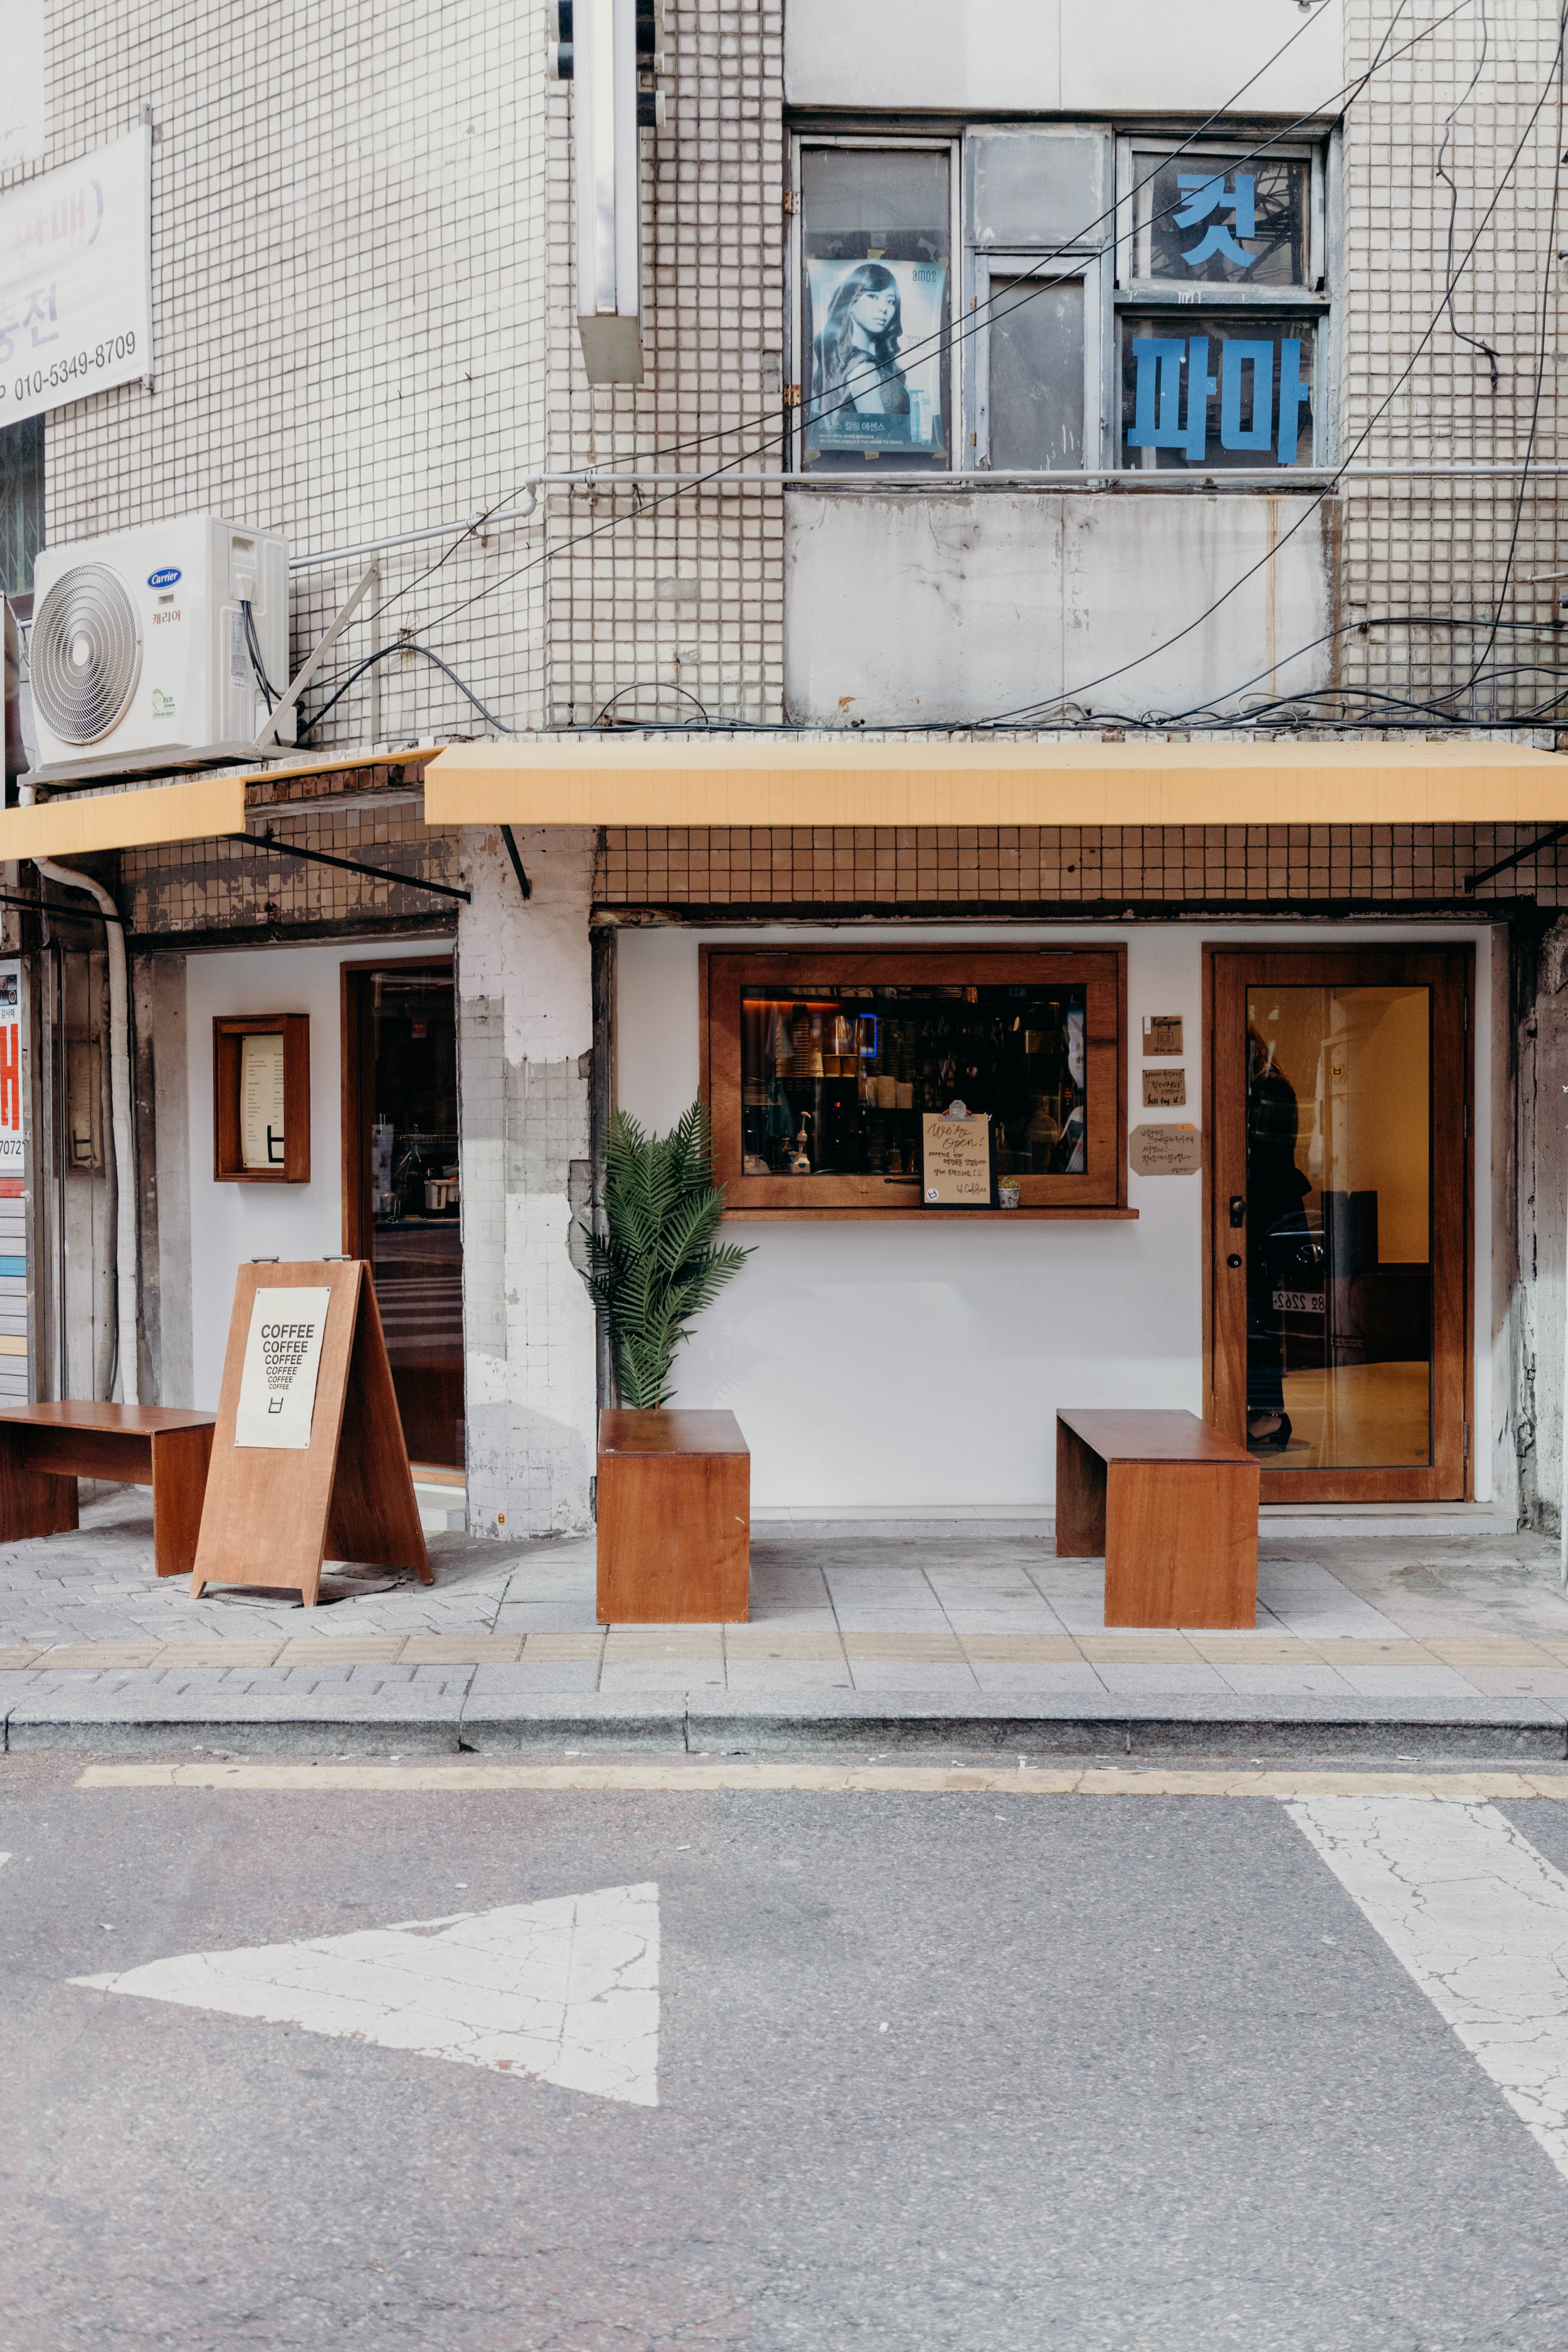 Beup Coffee: An Old-School Coffee Shop in Central Seoul | On the Street Where We Live ( aretherelilactrees.com )  ㅂ Coffee, coffee shop, Seoul, South Korea